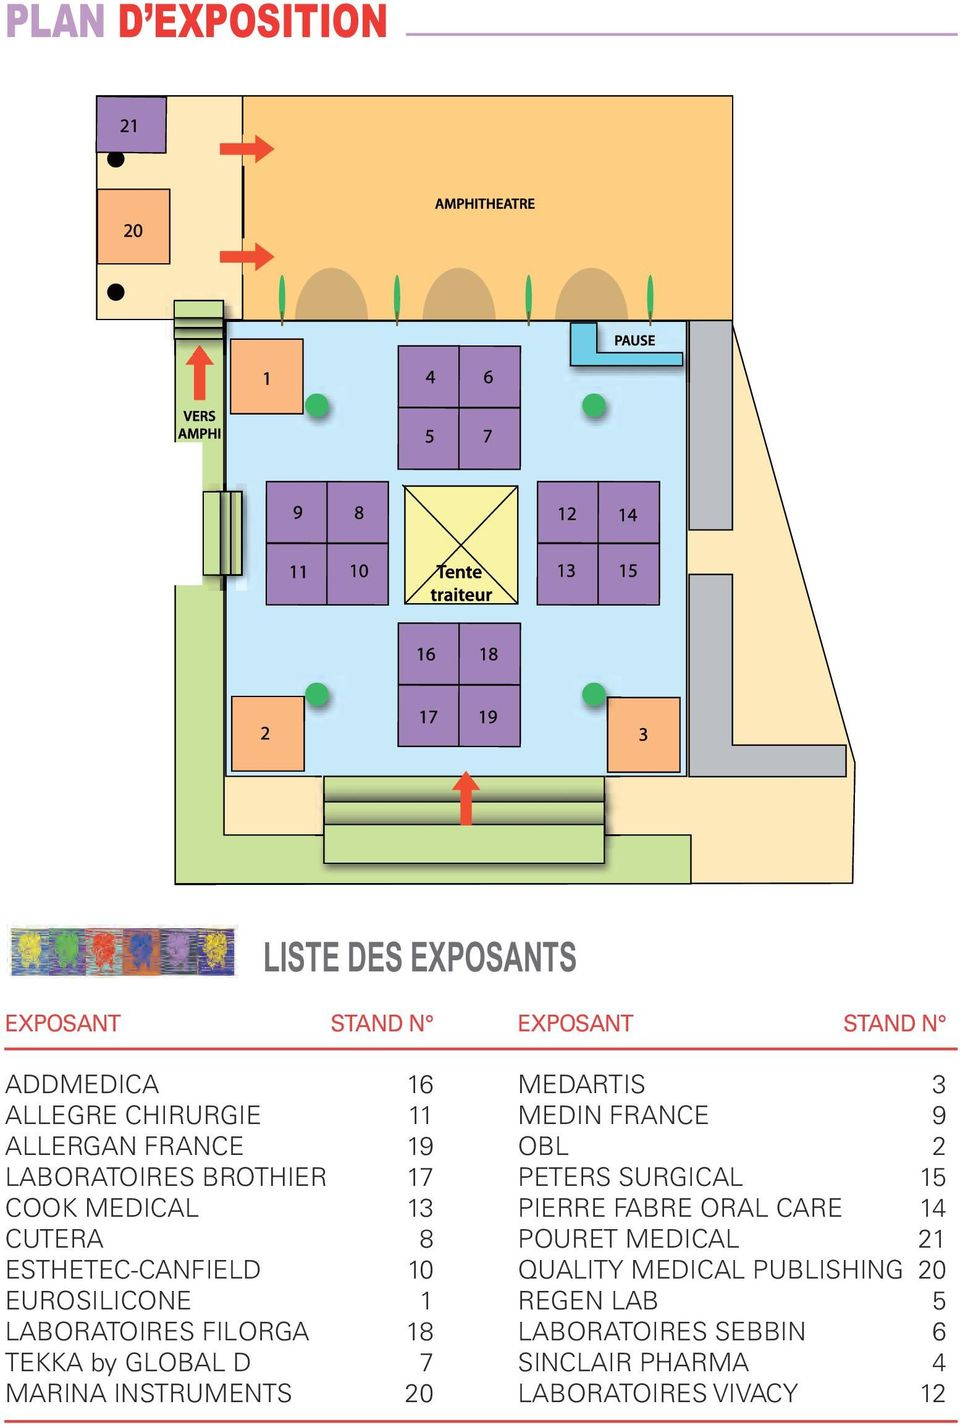 GLOBAL D 7 MARINA INSTRUMENTS 20 EXPOSANT STAND N MEDARTIS 3 MEDIN FRANCE 9 OBL 2 PETERS SURGICAL 15 PIERRE FABRE ORAL